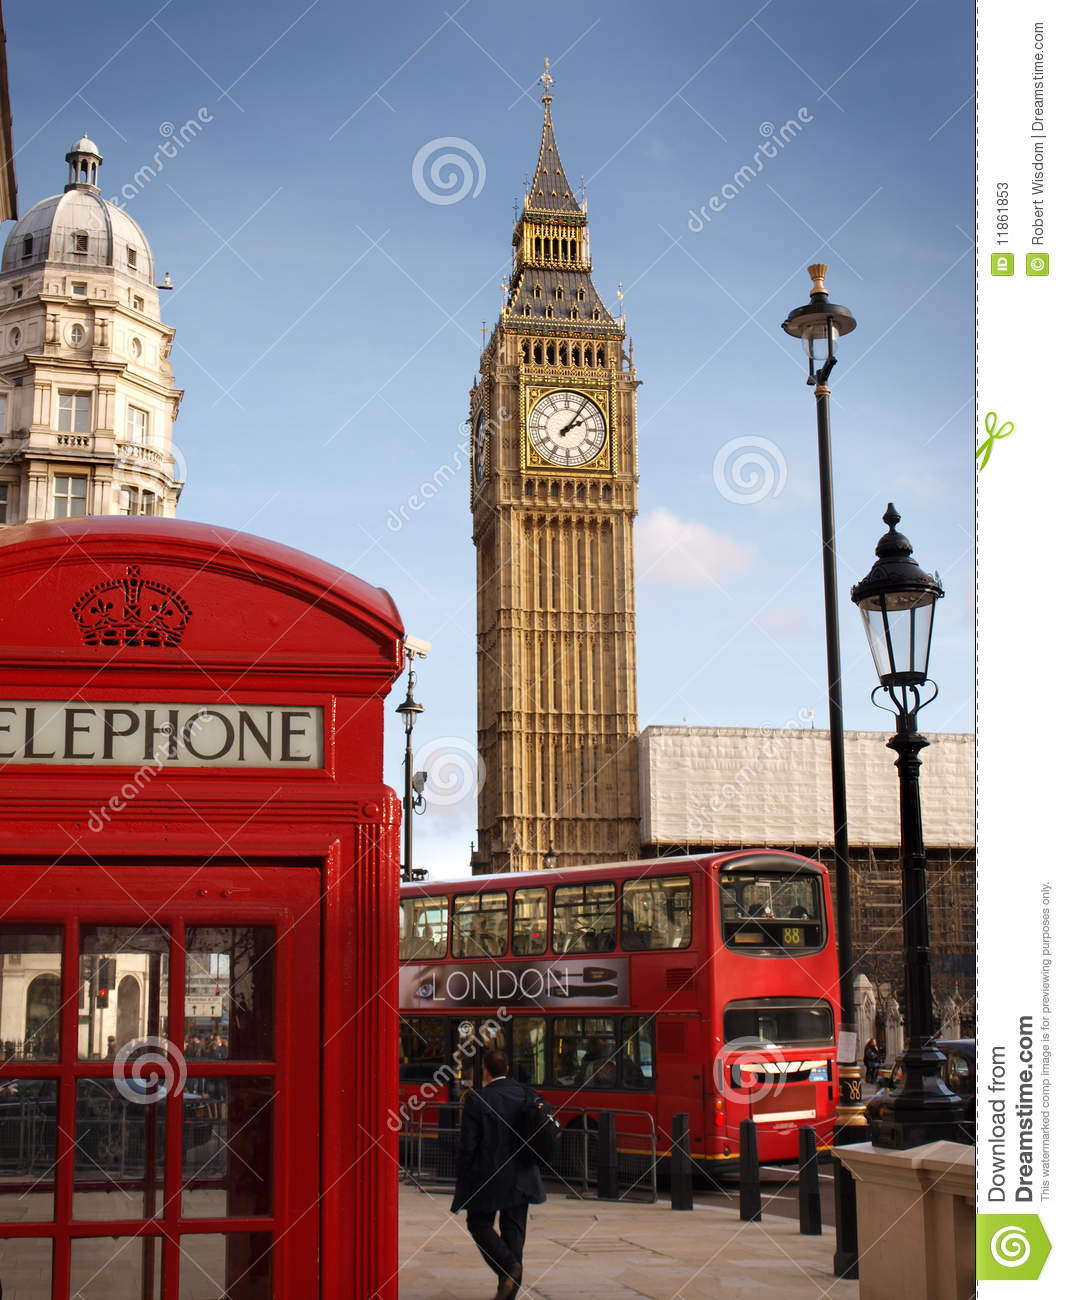 London Scene with Big Ben, London Double Decker Bus and Red Telephone ...